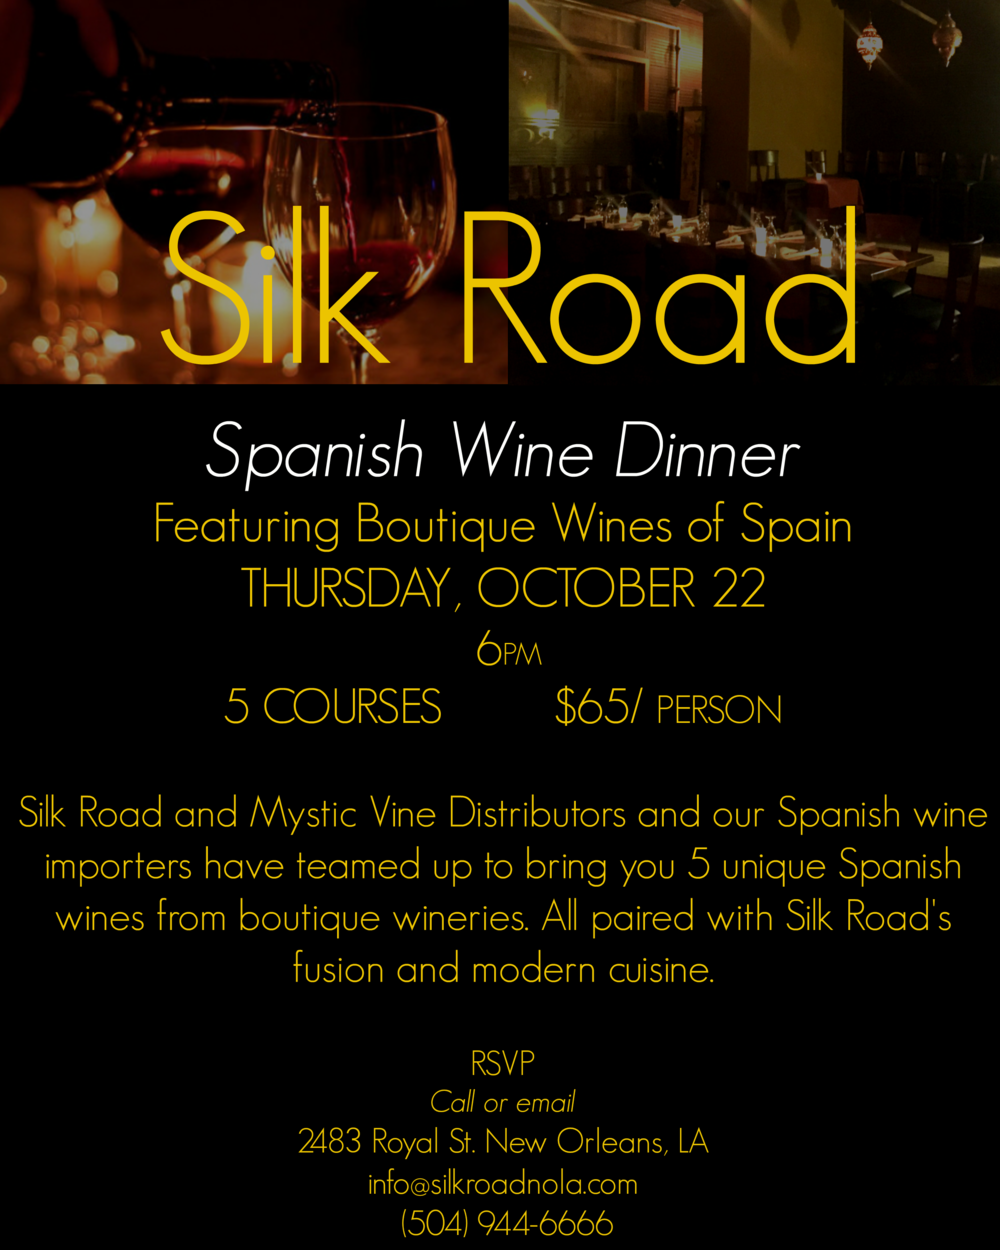 Silk Road of New Orleans presents their Spanish Wine Dinner on Thursday, October 22nd, 2015.